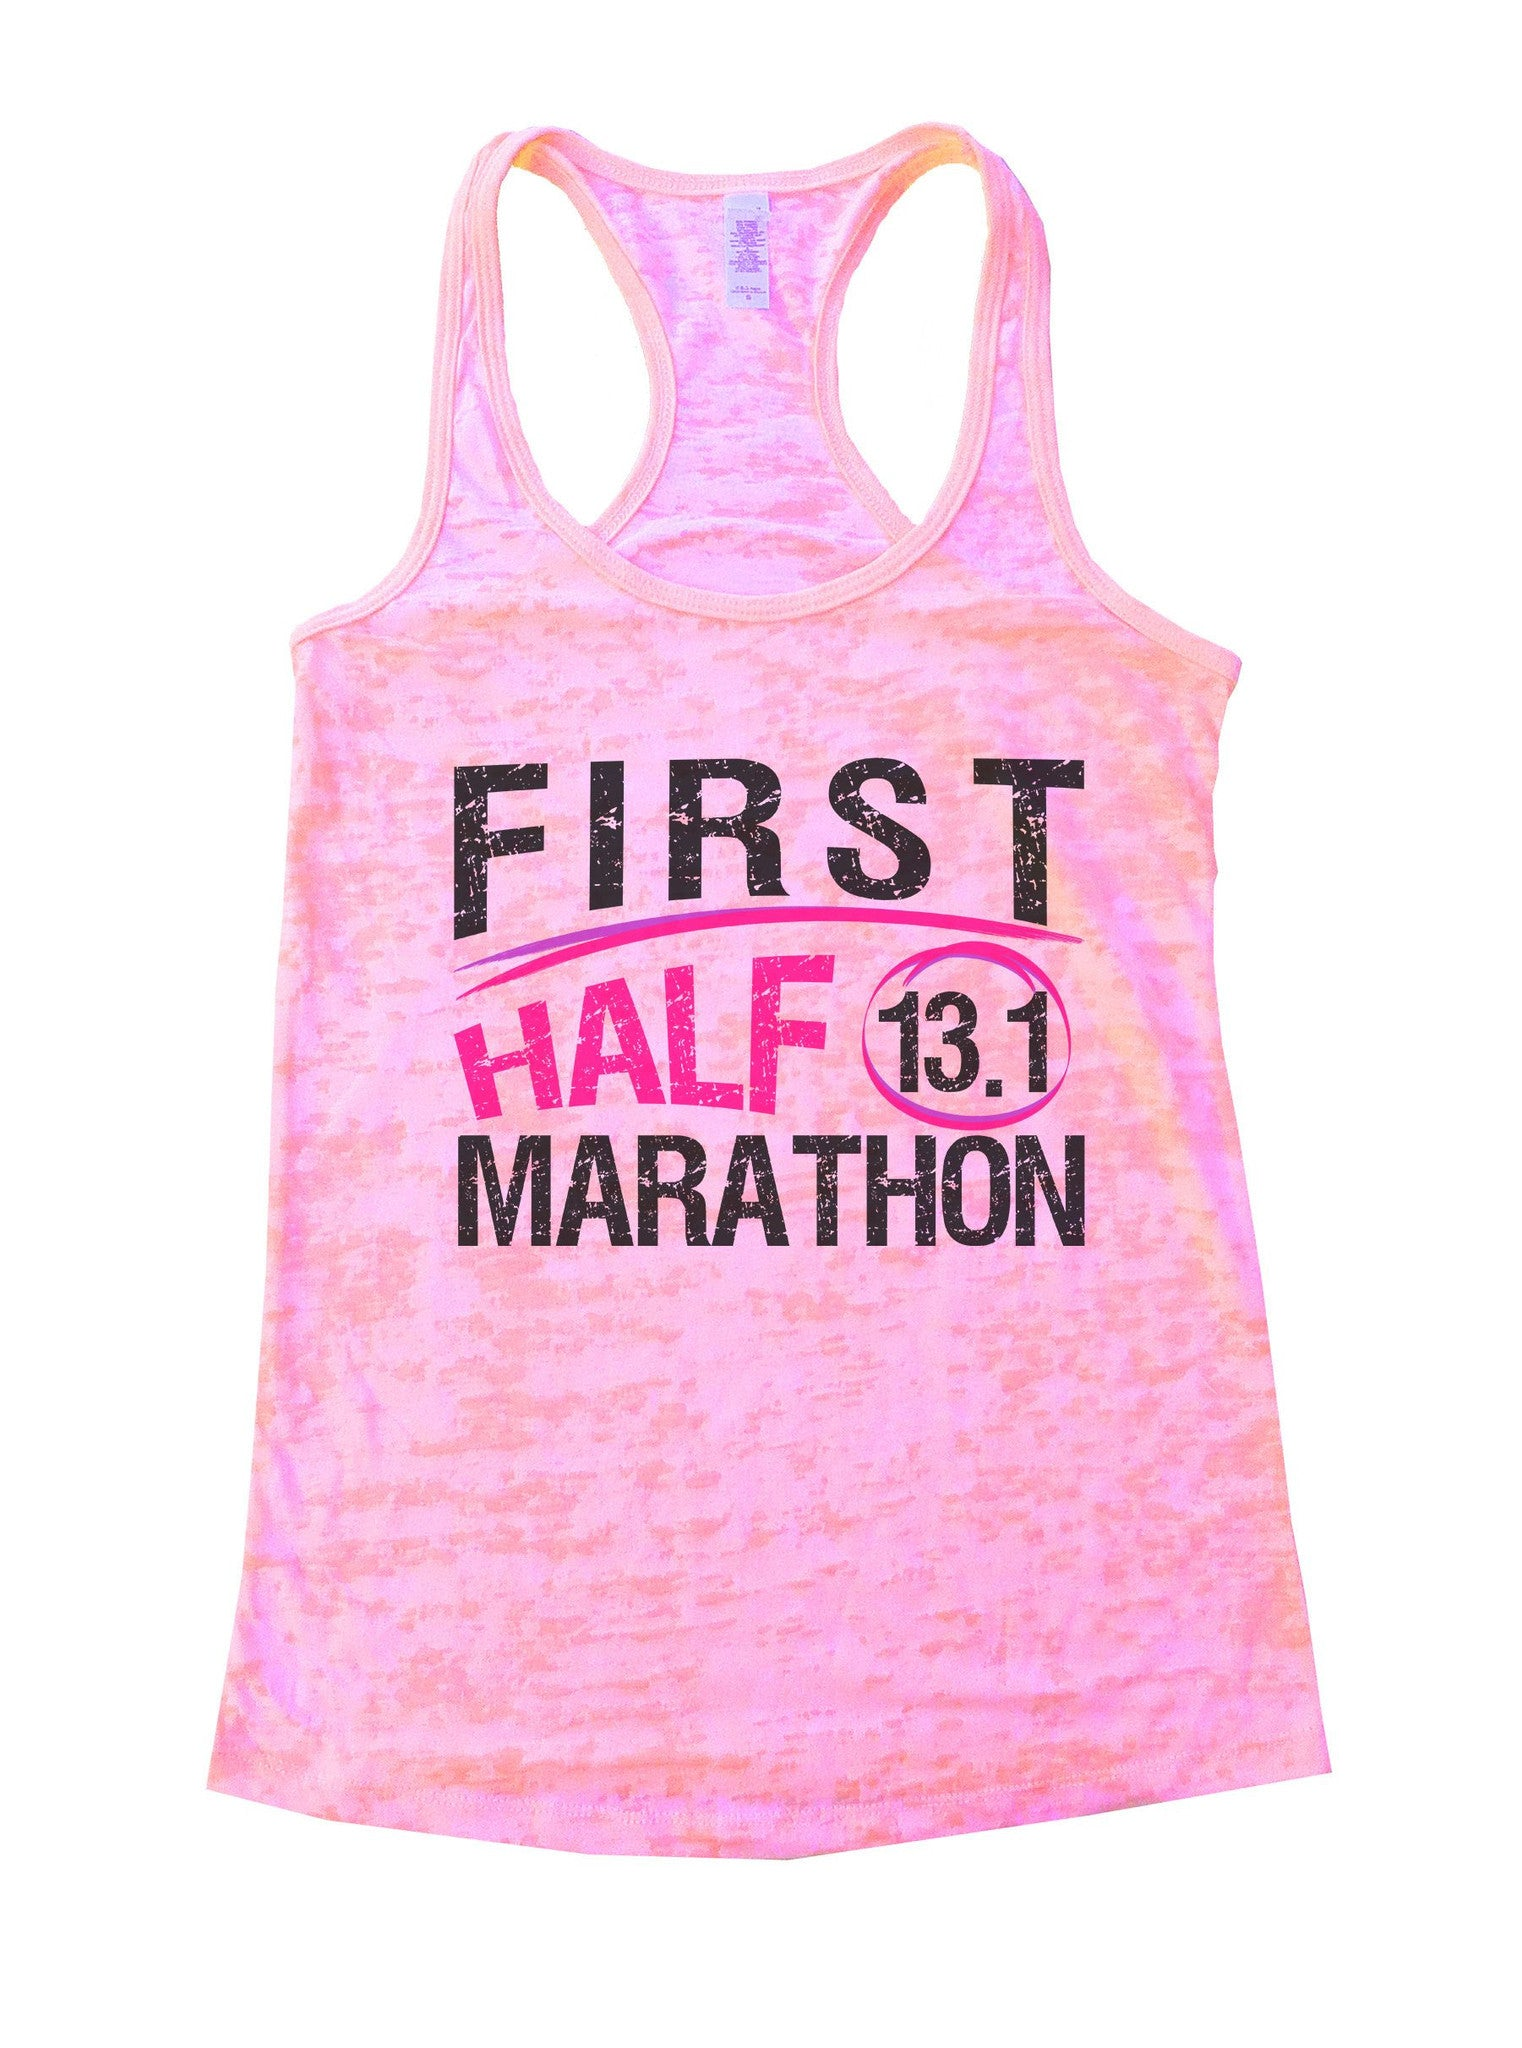 First Half 13.1 Marathon Burnout Tank Top By BurnoutTankTops.com - 1035 - Funny Shirts Tank Tops Burnouts and Triblends  - 2